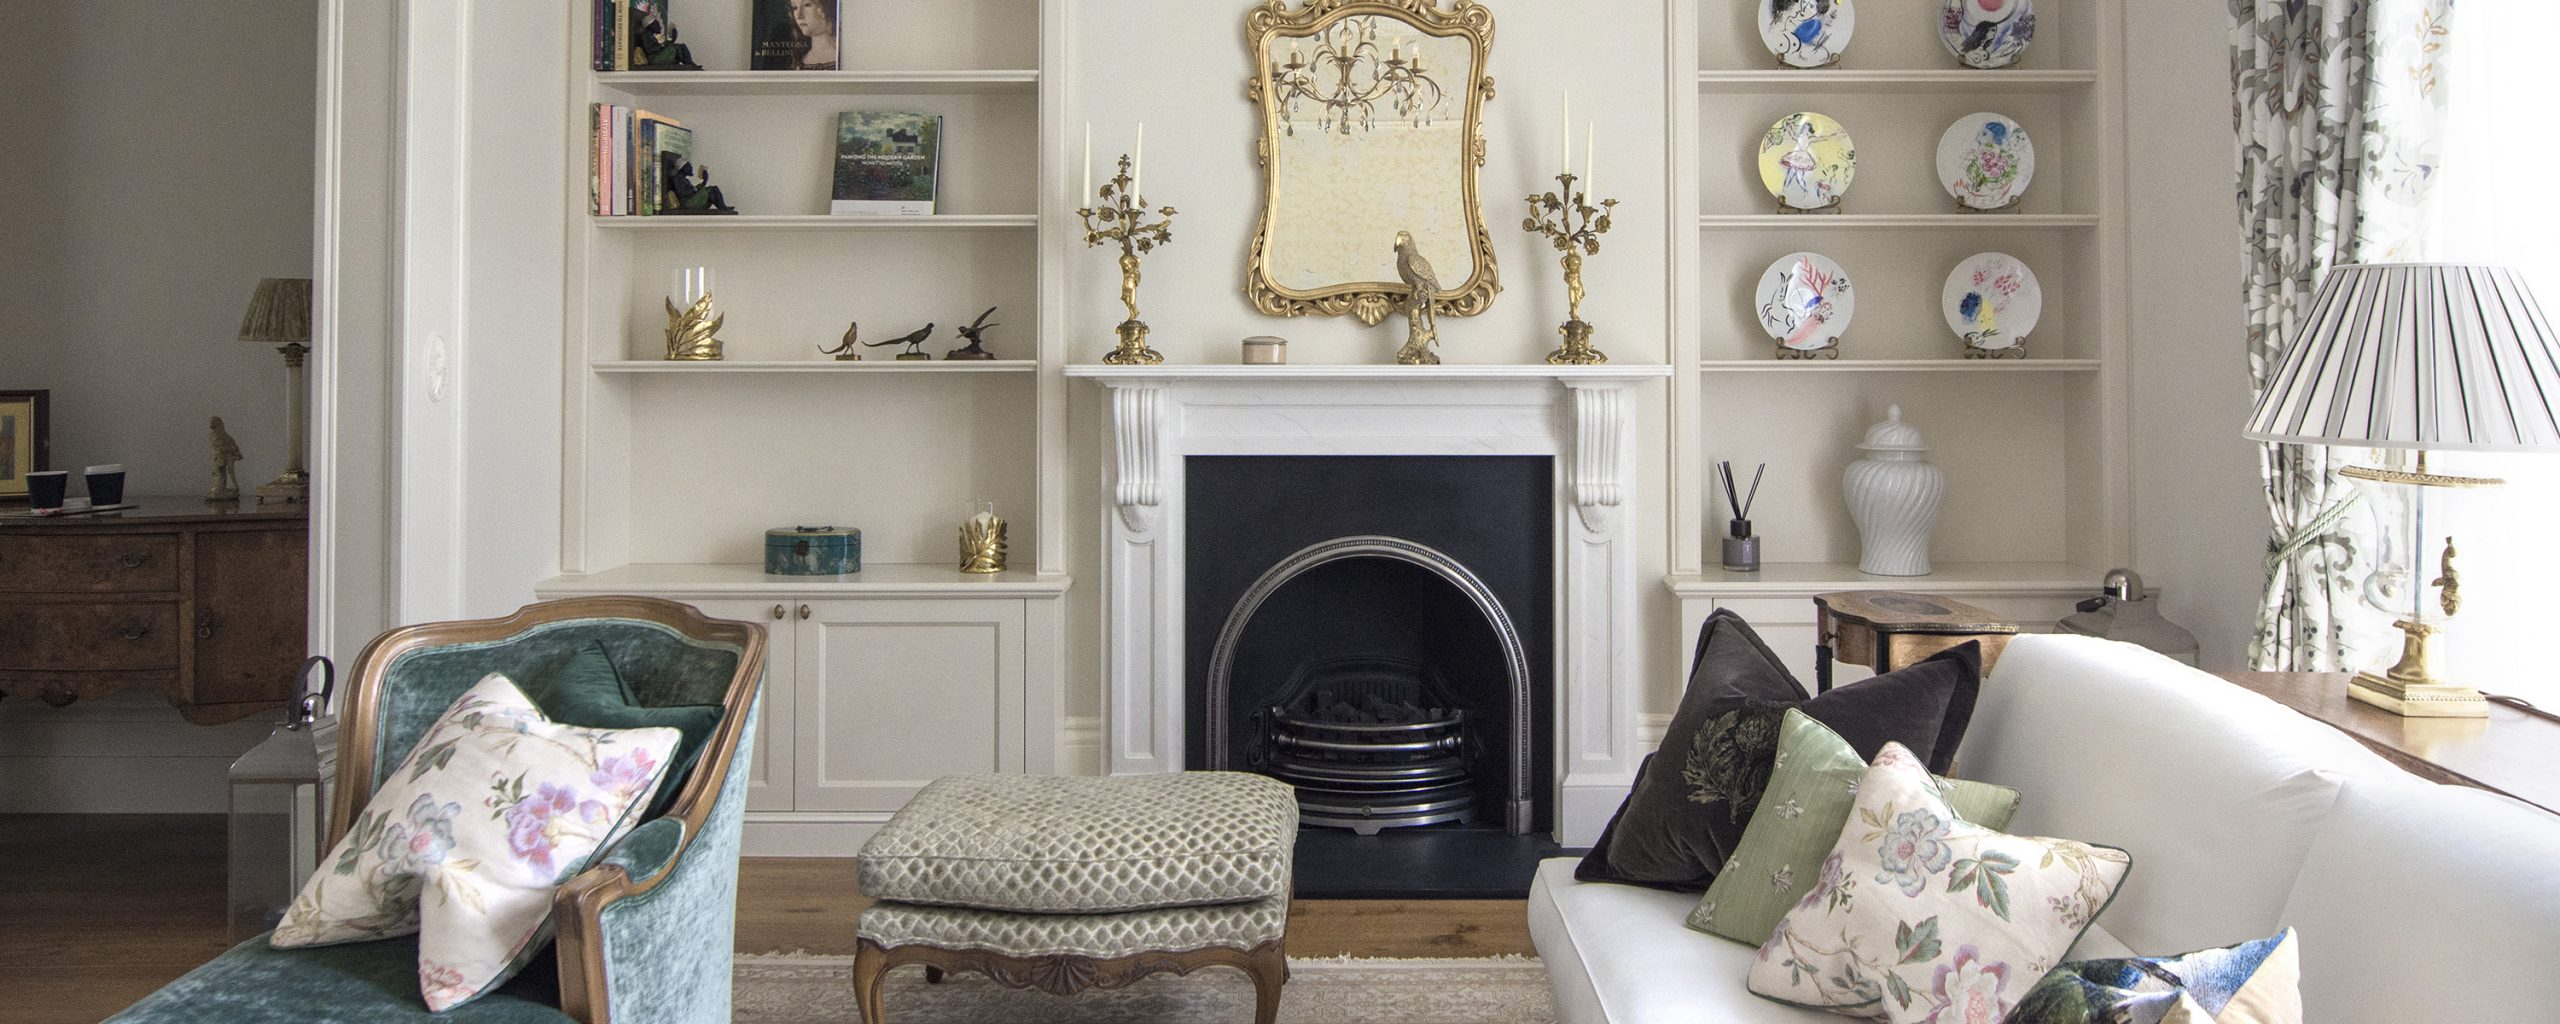 PERSONALISED INTERIOR DESIGN IS THE NEW LUXURY